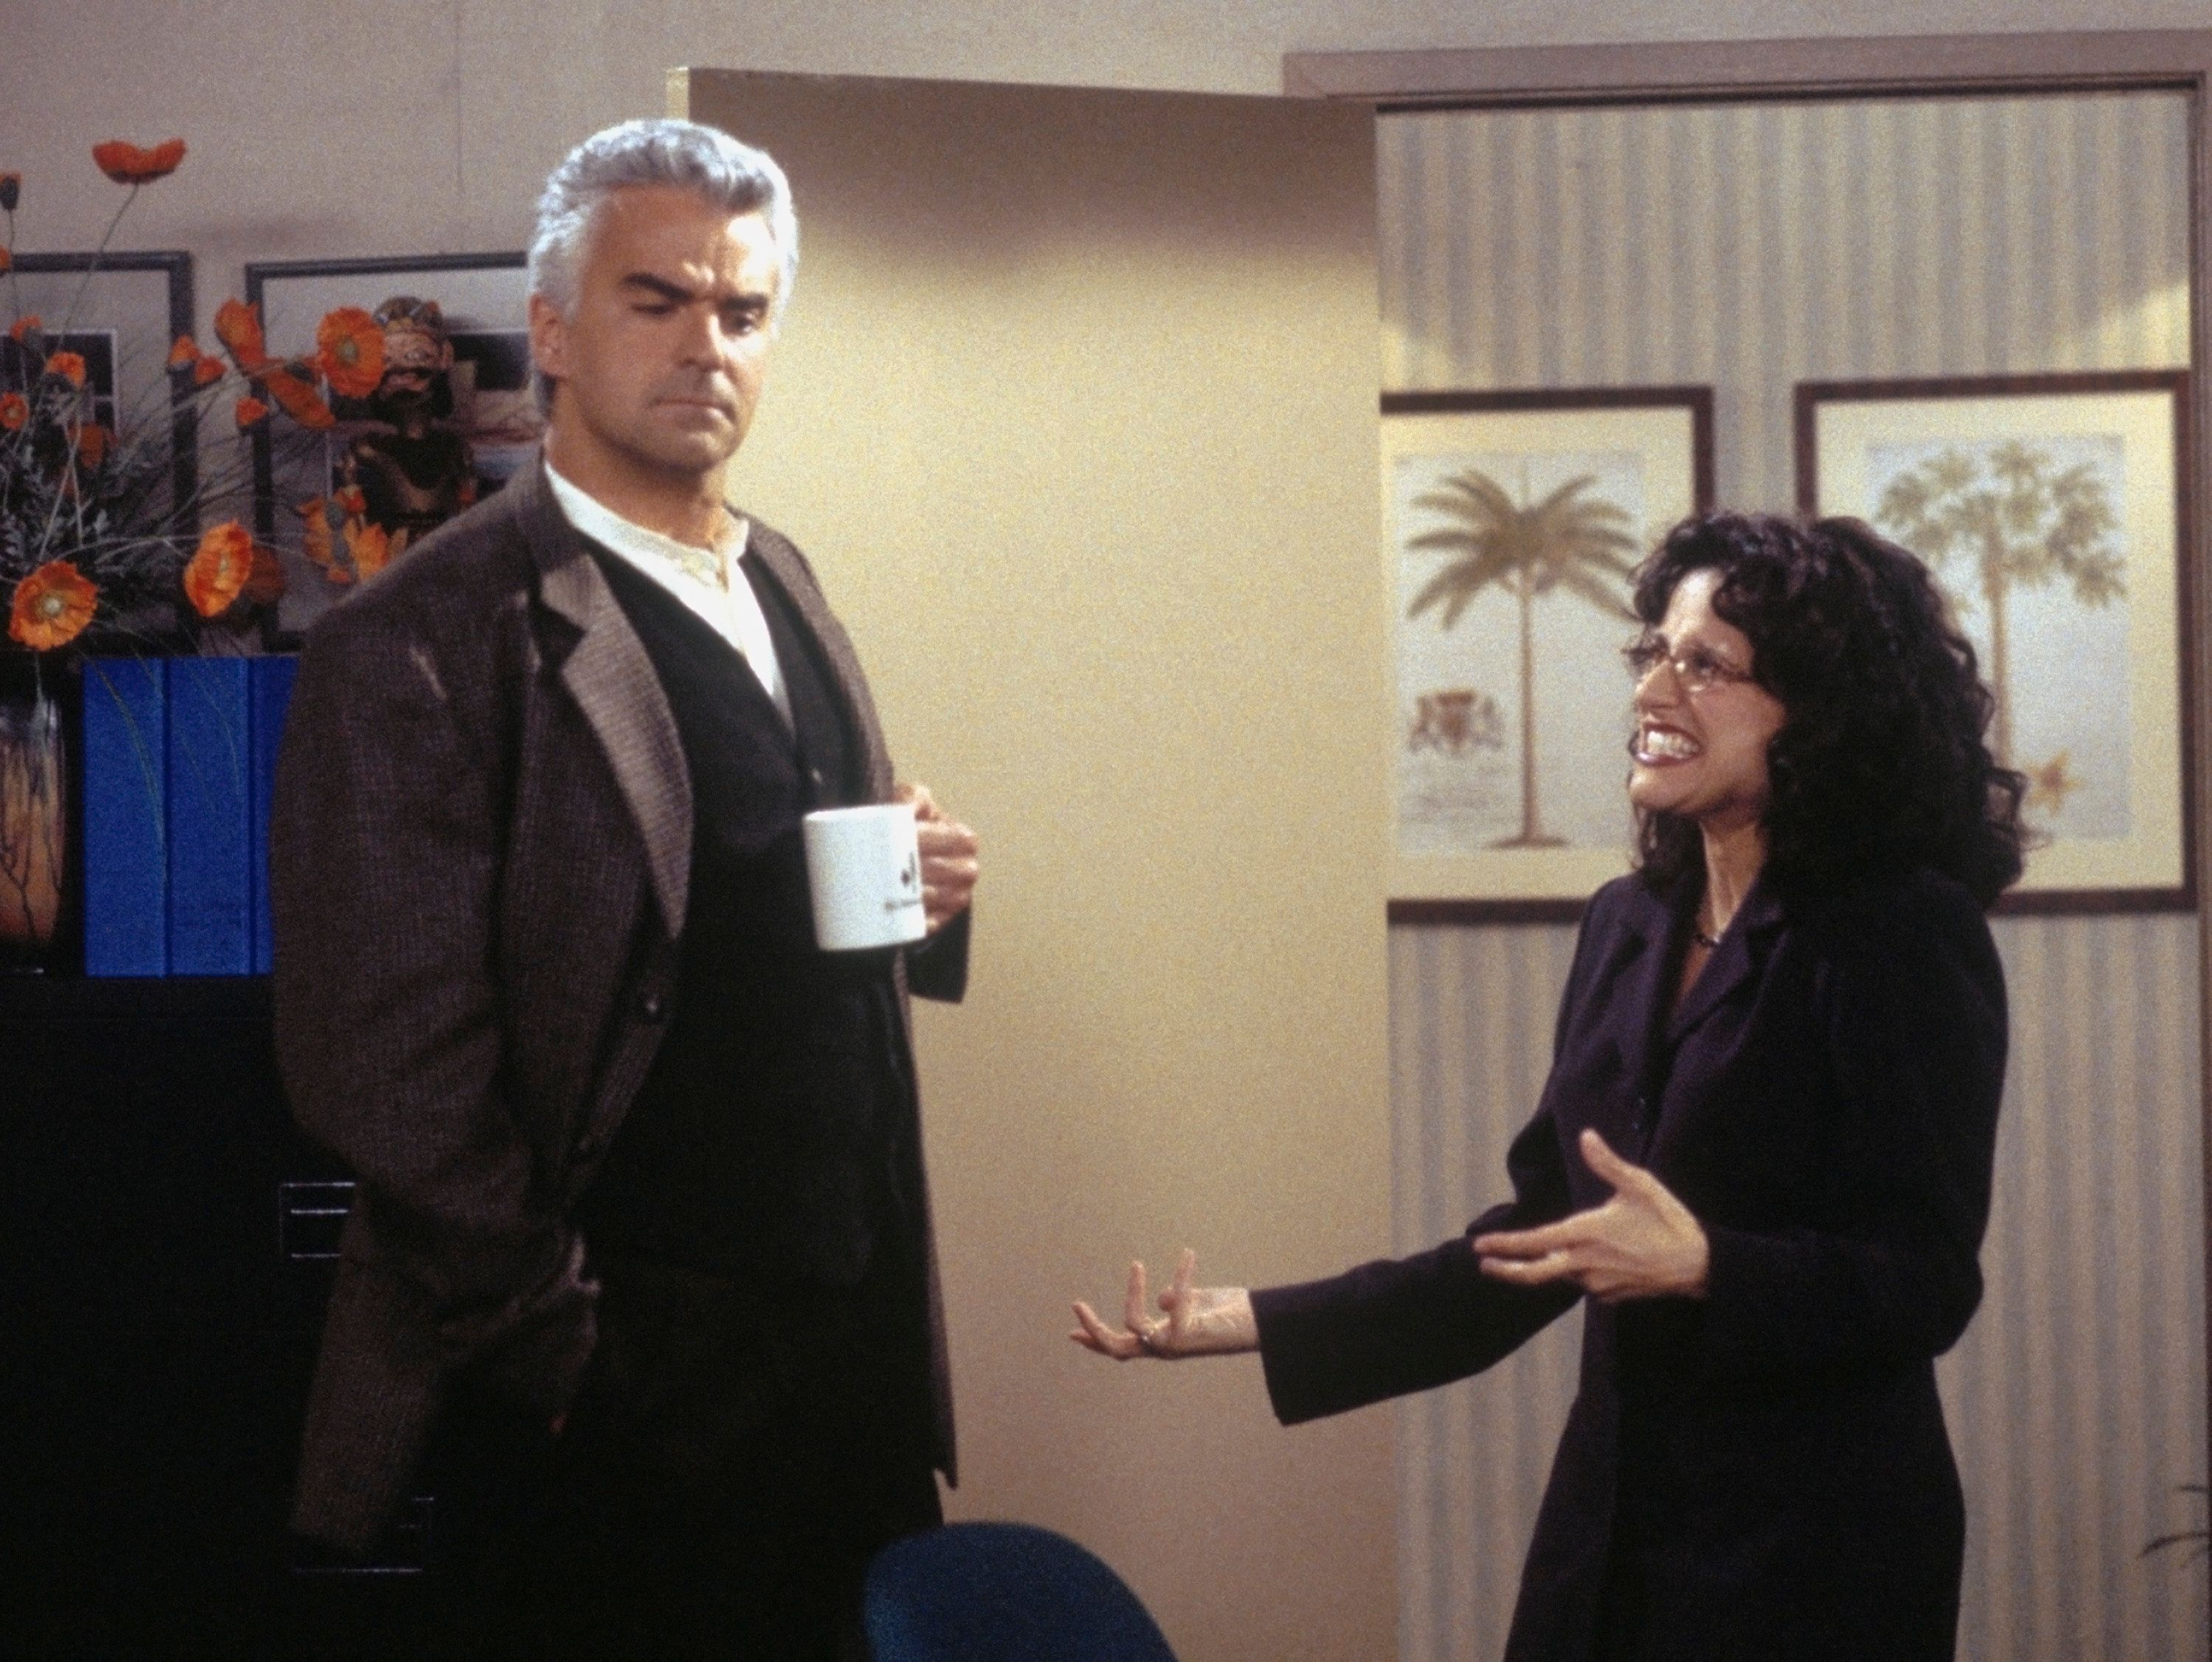 """SEINFELD -- """"The Bookstore"""" Episode 17 -- Pictured: (l-r) John O'Hurley as J. Peterman, Julia Louis-Dreyfus as Elaine Benes  (Photo by Joey Delvalle/NBC/NBCU Photo Bank via Getty Images)"""